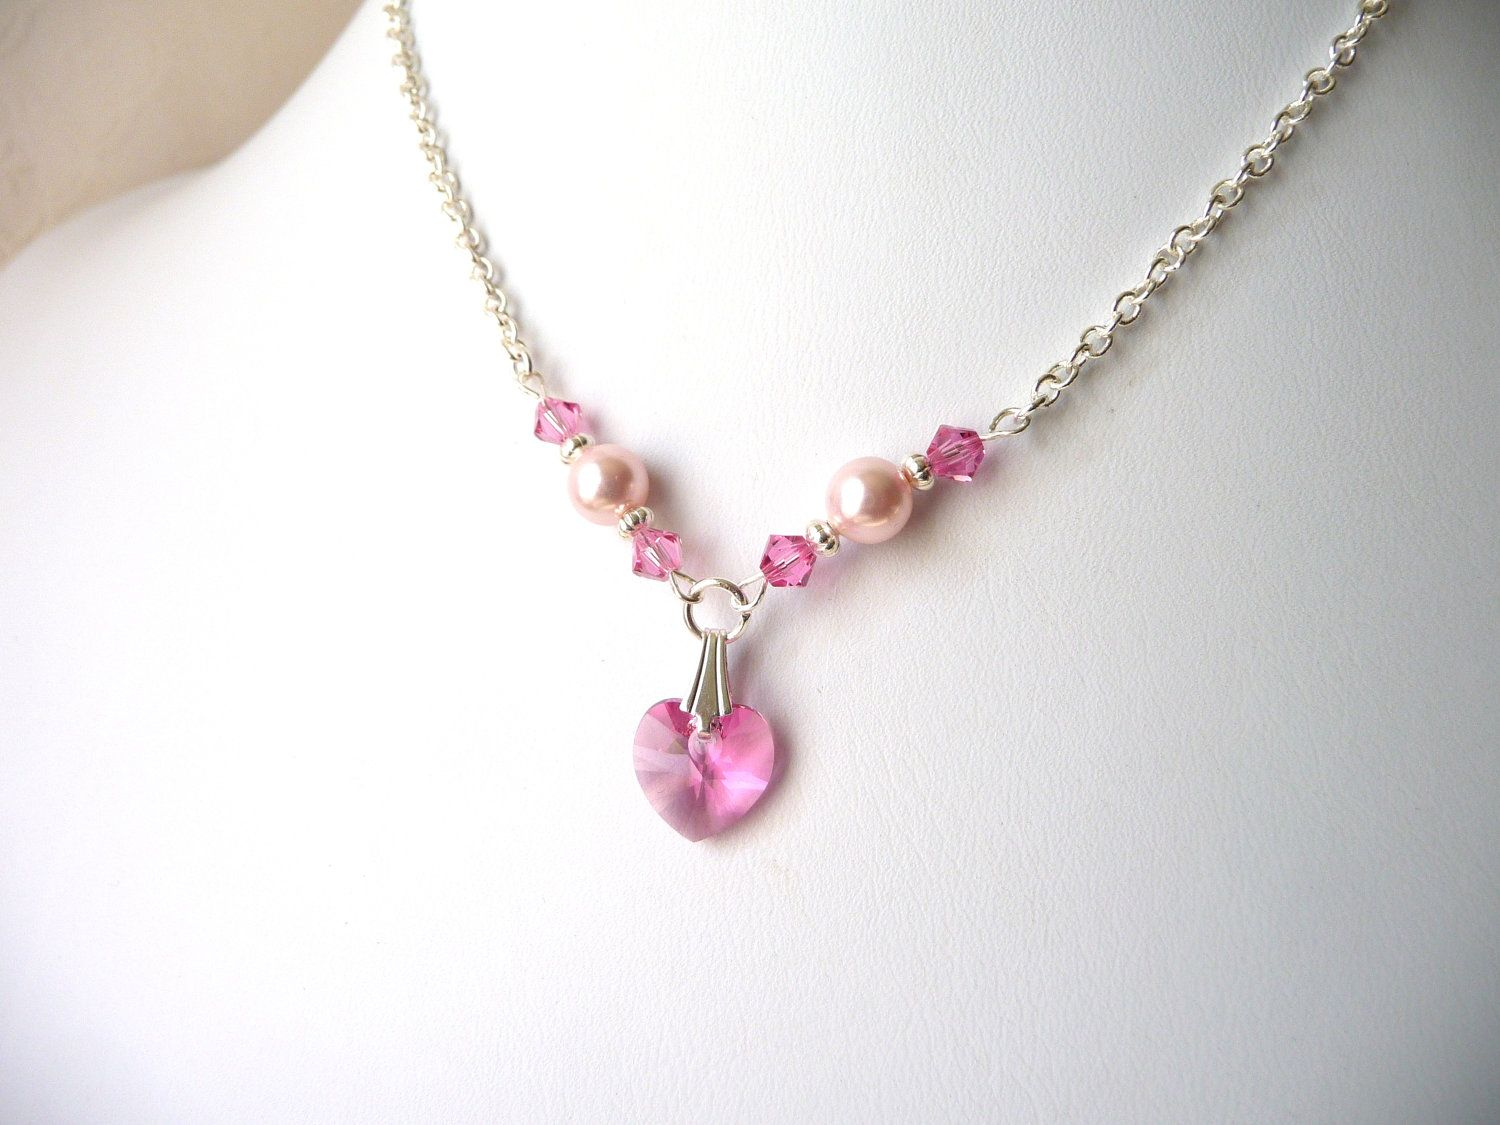 Childrens Heart Necklace Pink Heart Necklace Kids Jewelry Etsy In 2020 Little Girl Jewelry Crystal Heart Necklace Pink Heart Necklace